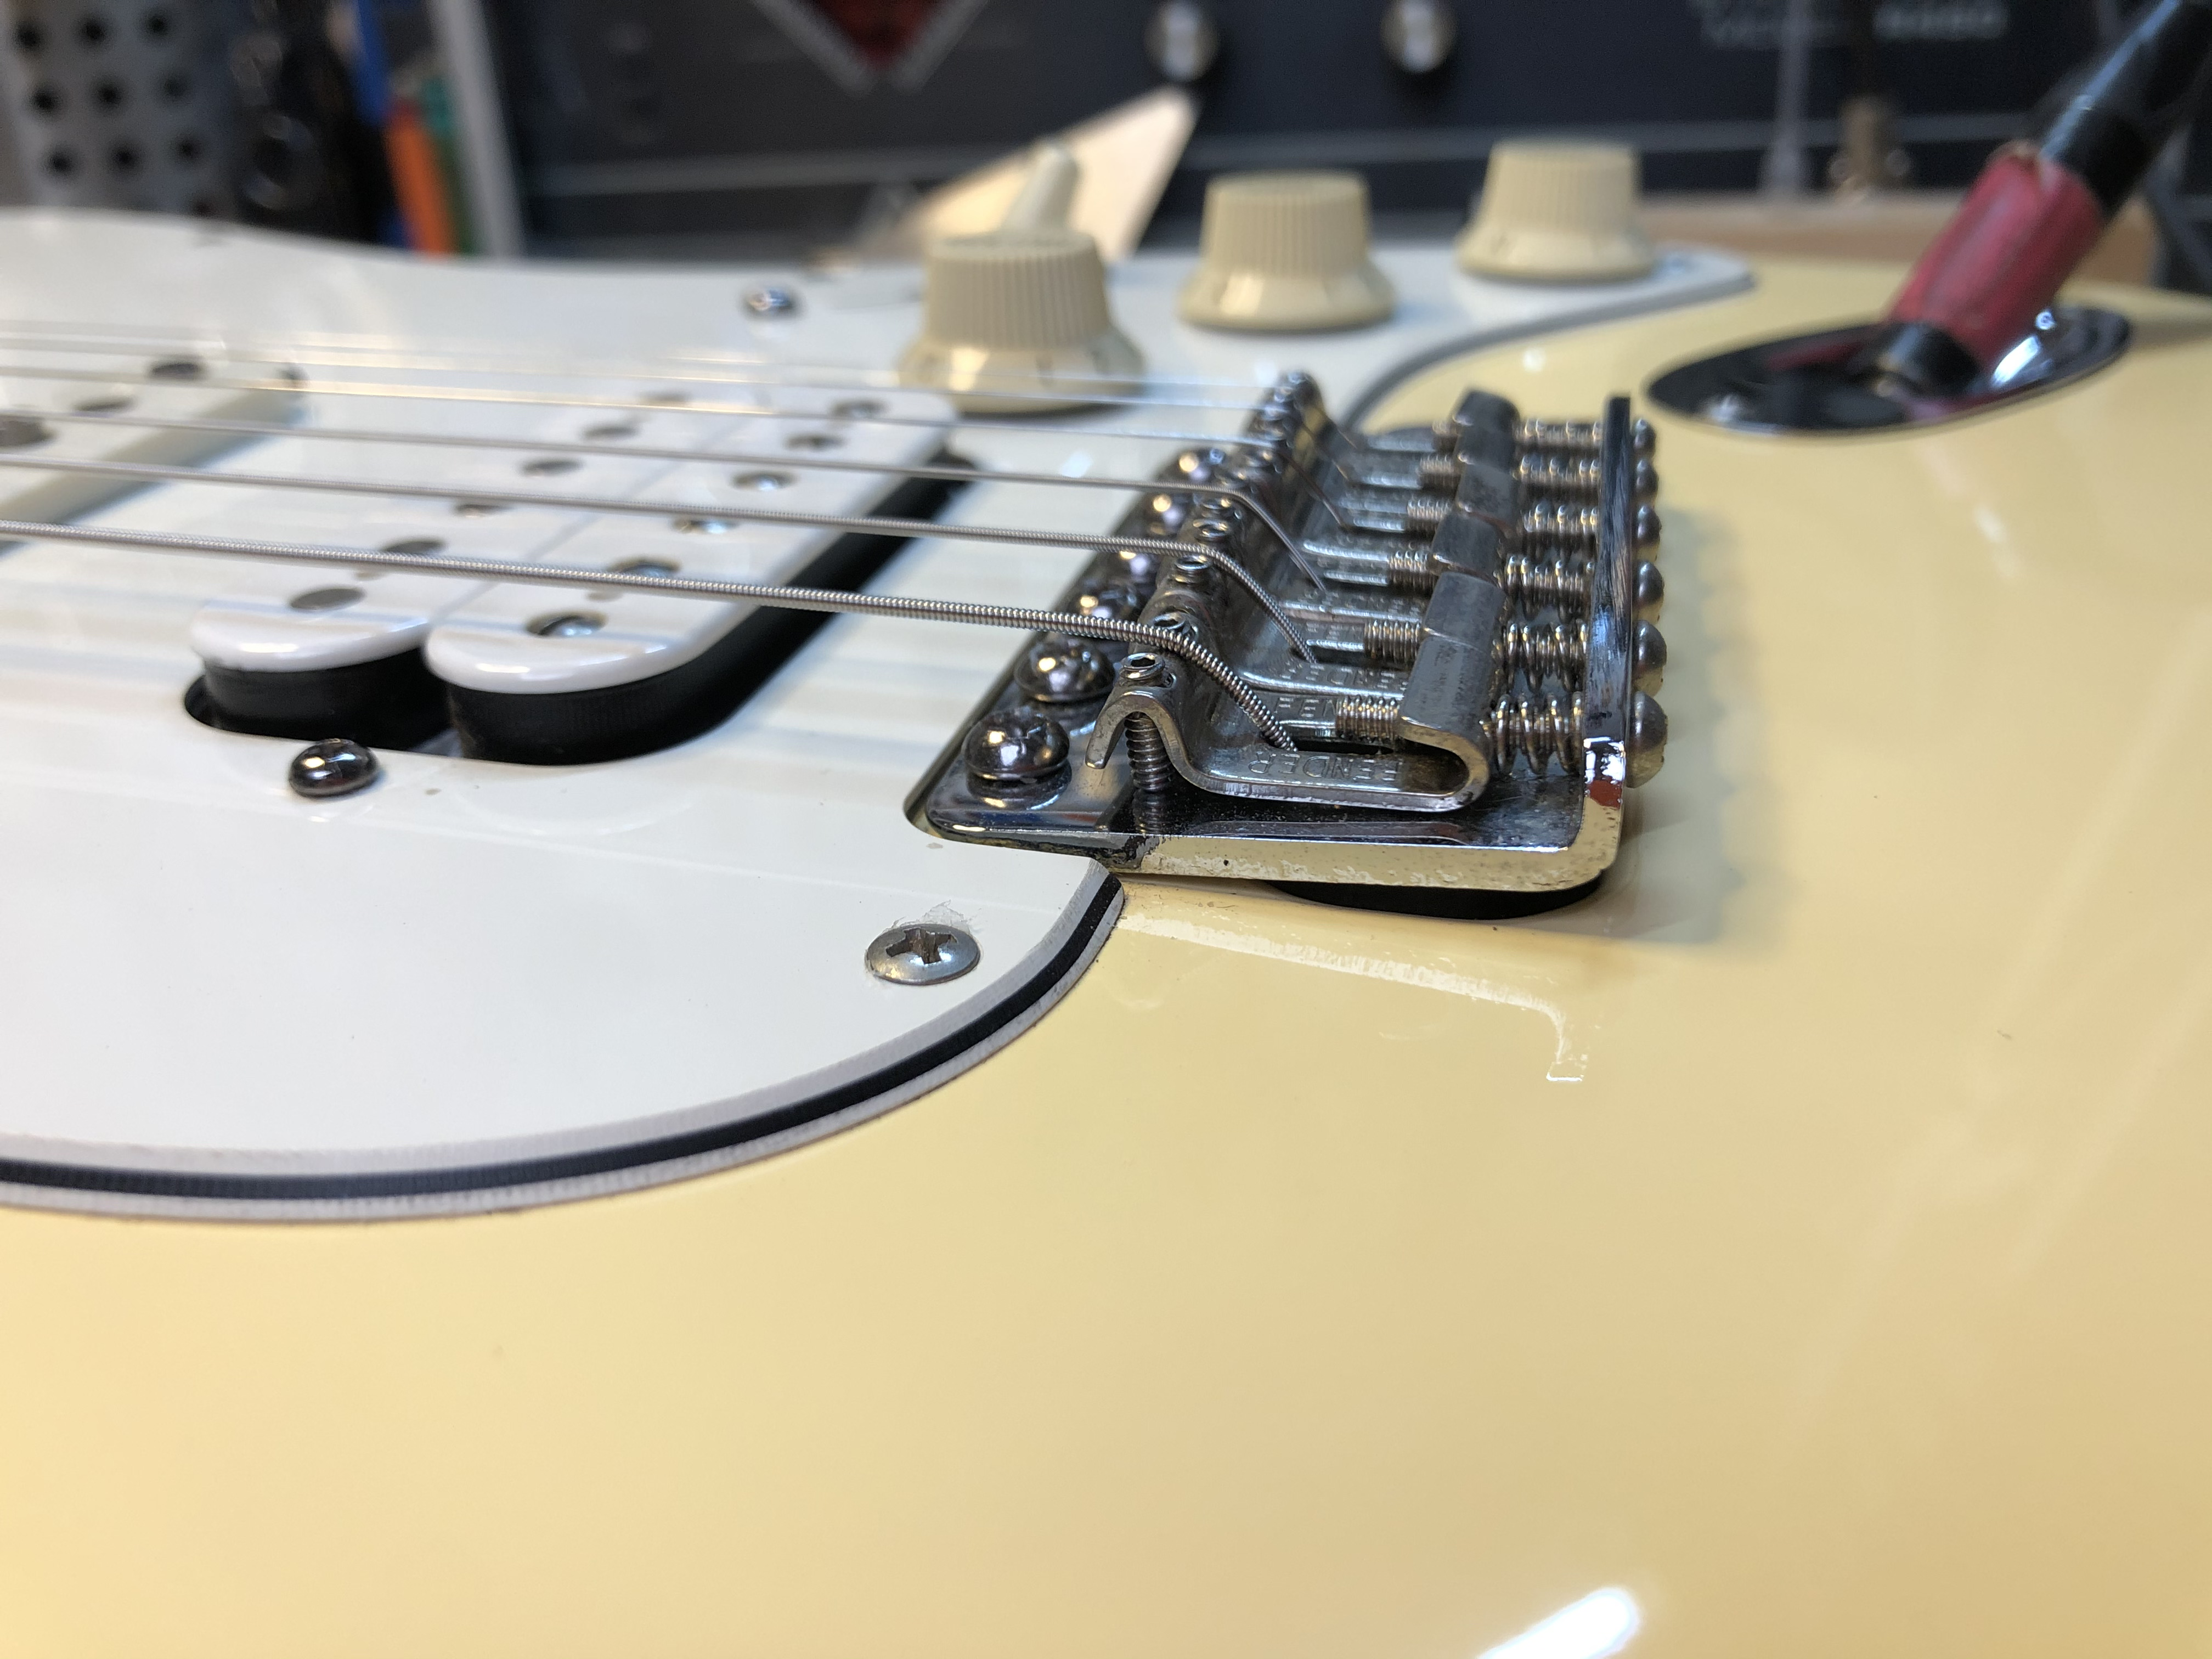 Setup on Fender Strat